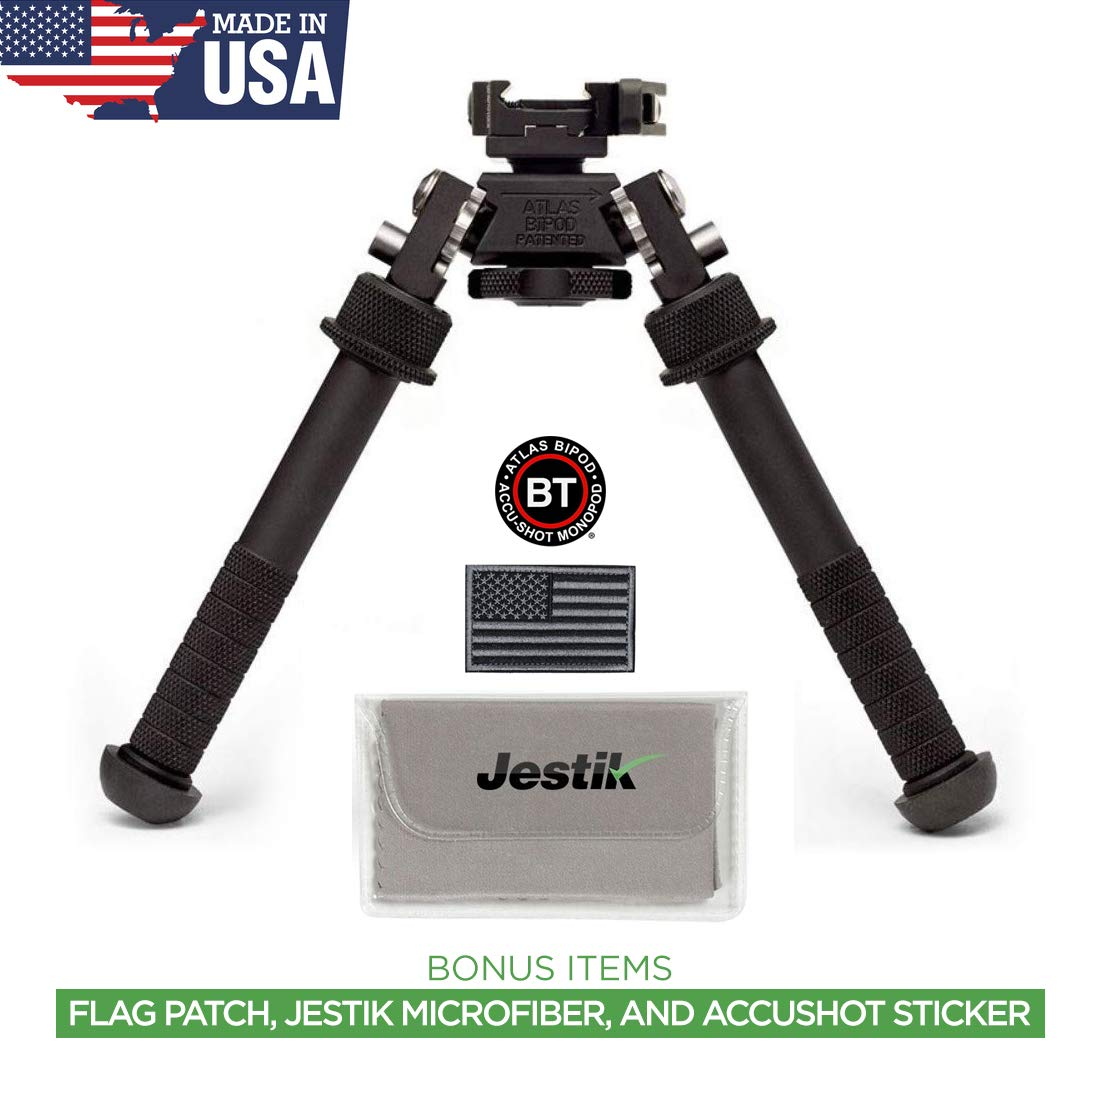 Accu-Shot Atlas Bipod BT10-LW17 with ADM 170-S Lever Plus USA Flag Patch and Jestik Microfiber Cleaning Cloth by Accu-Shot